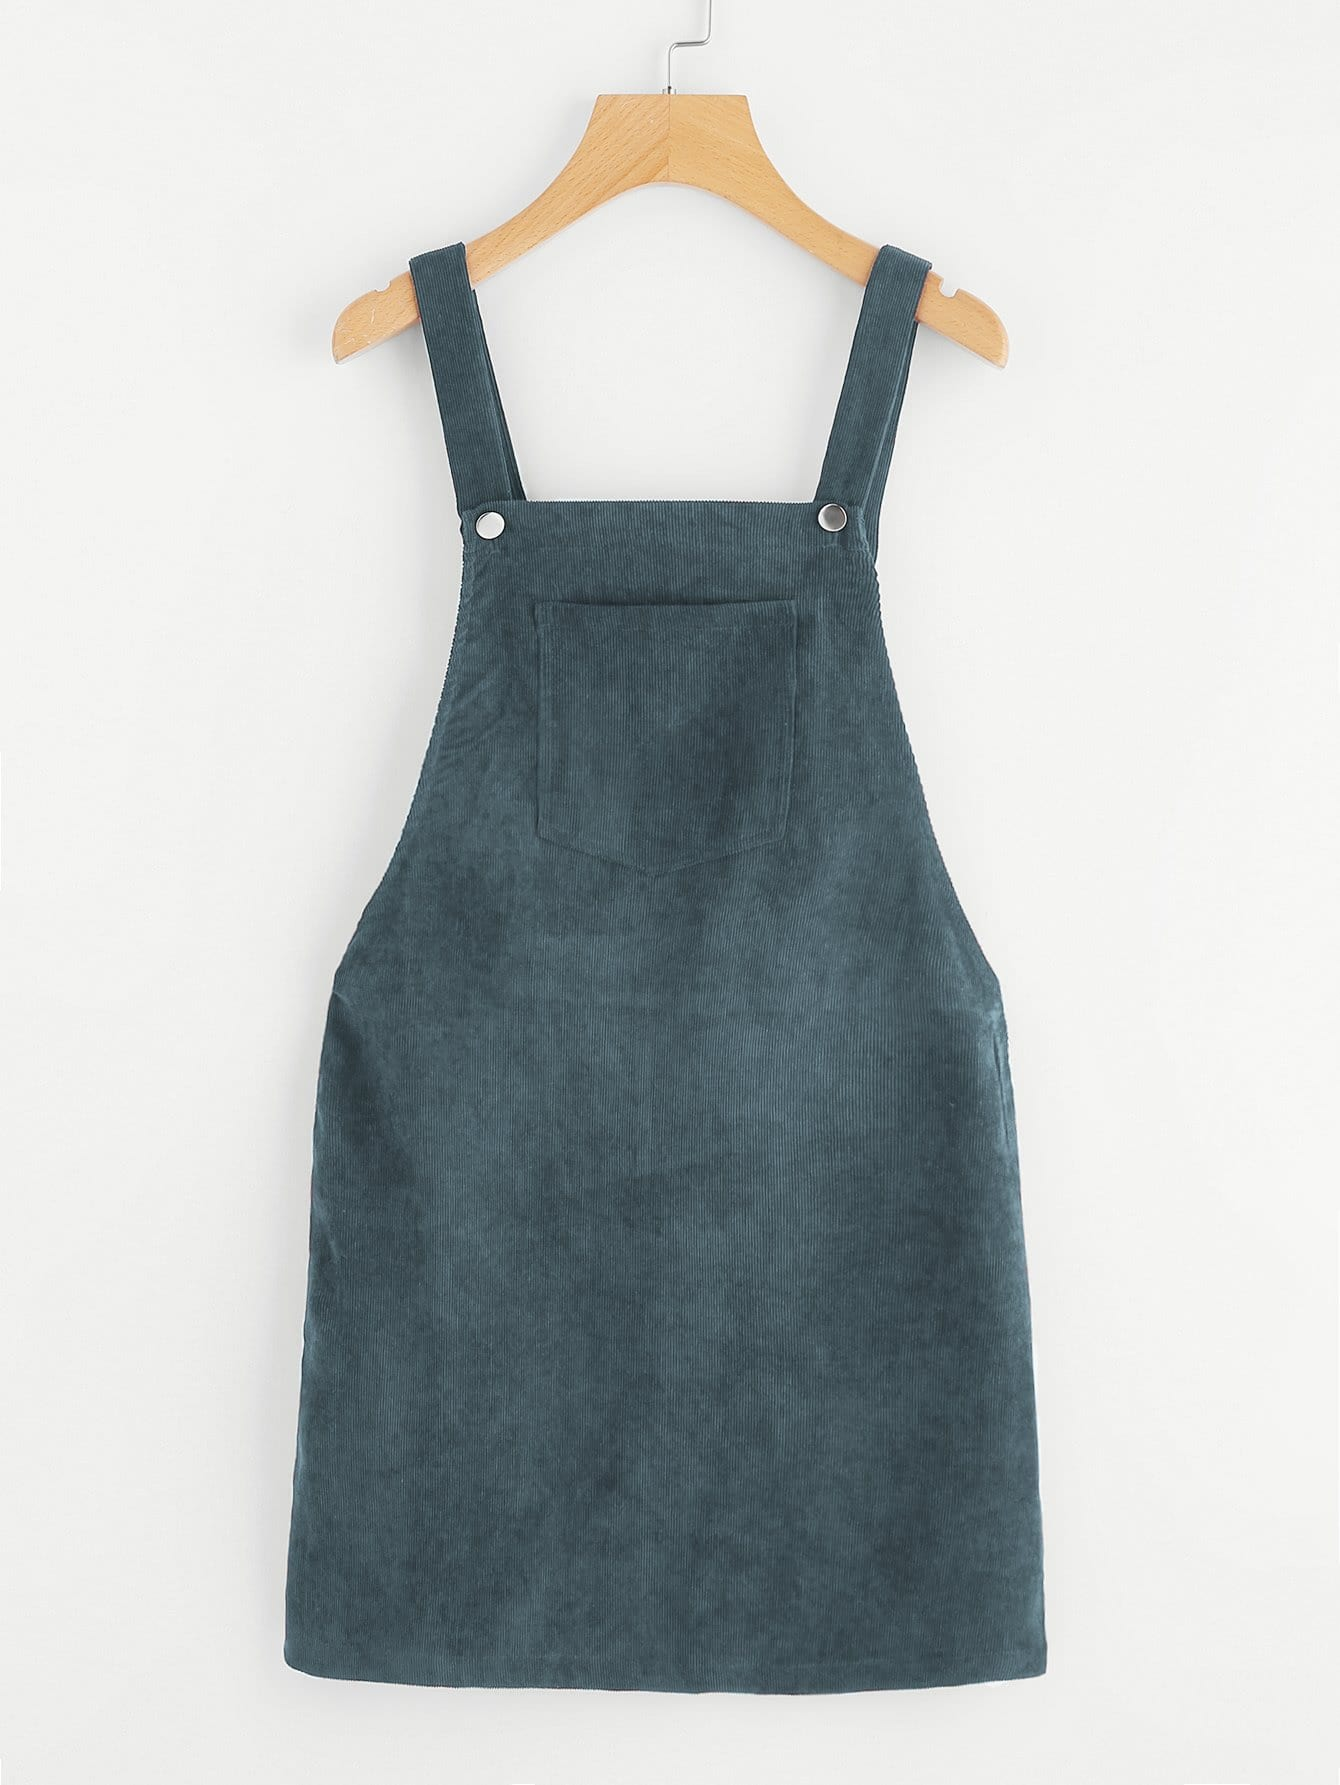 986eff2b232 Pocket Front Overall Corduroy Dress